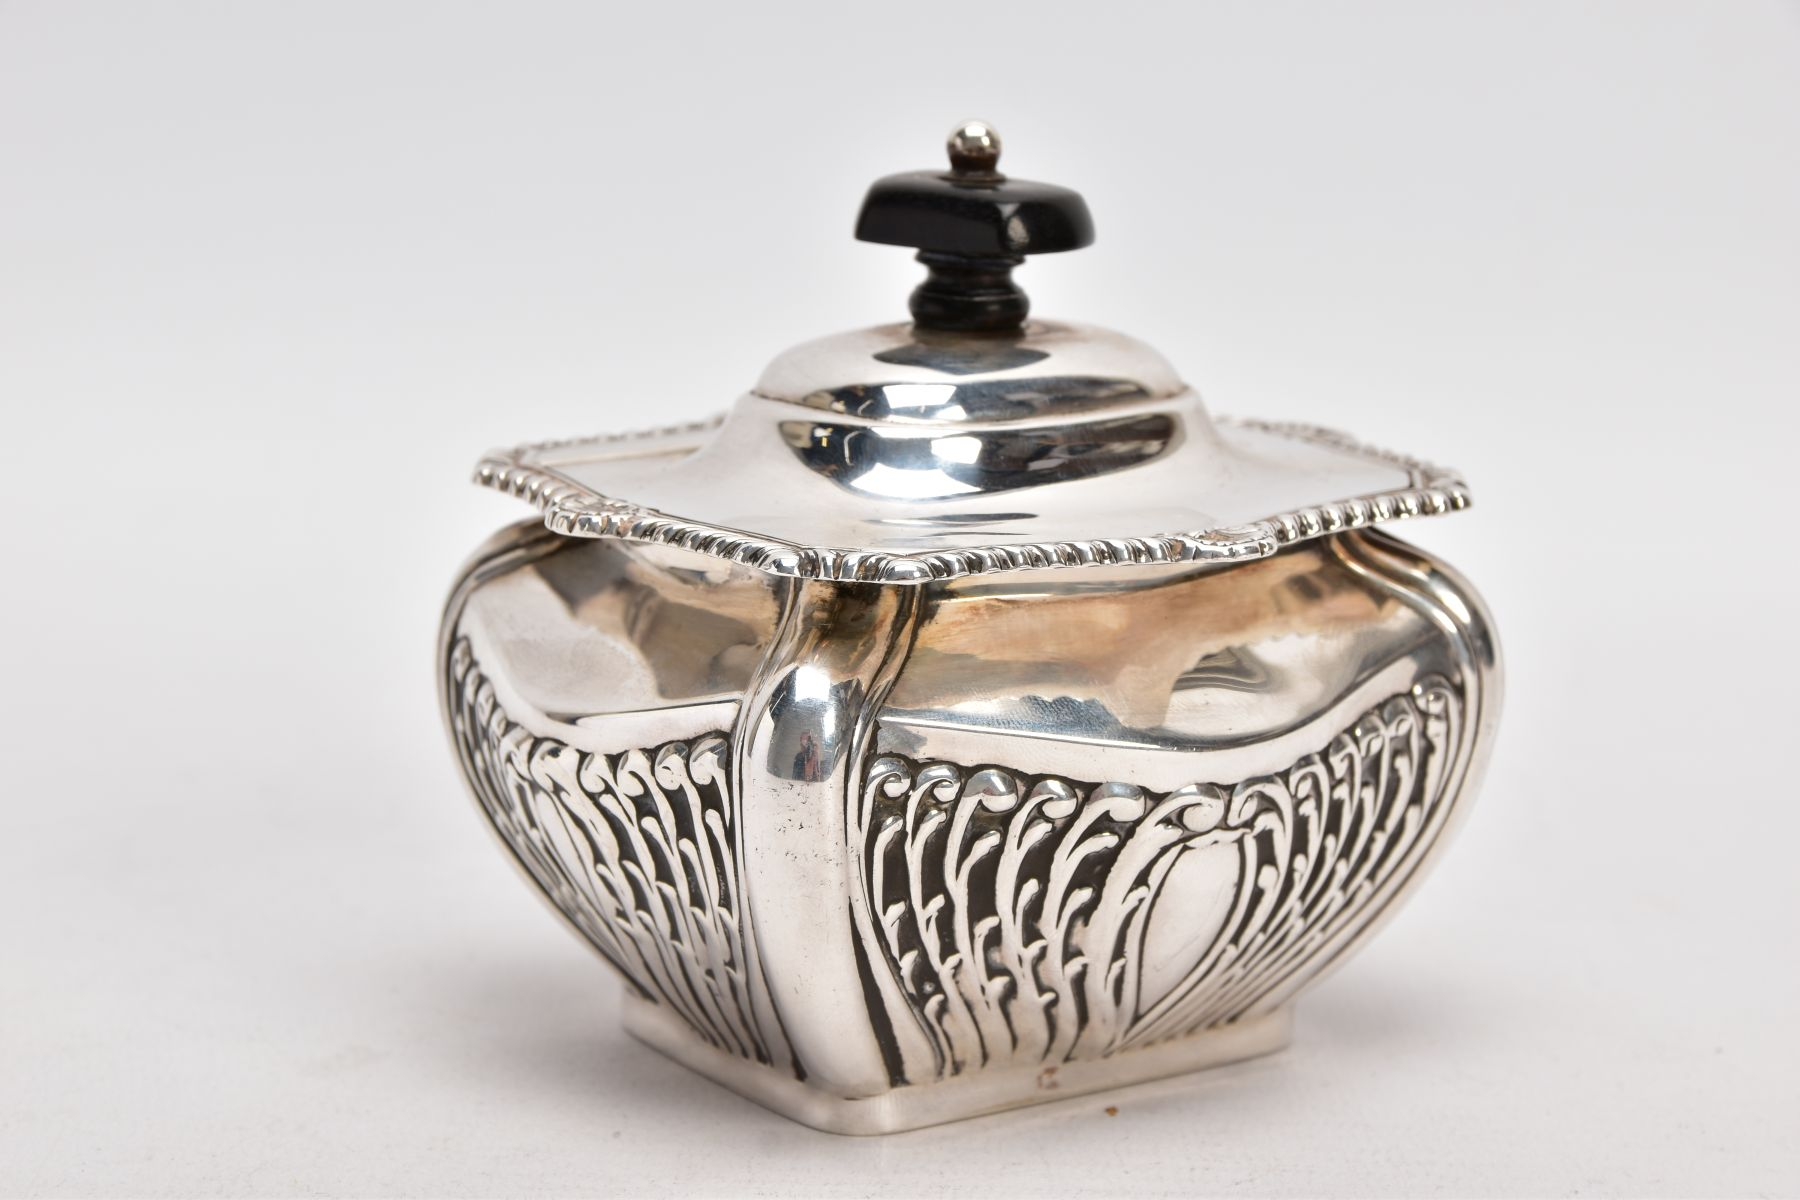 AN EDWARDIAN SILVER TEA CADDY, bomb shaped sucrier with hinged cover, gadrooned and shell cast - Image 4 of 6